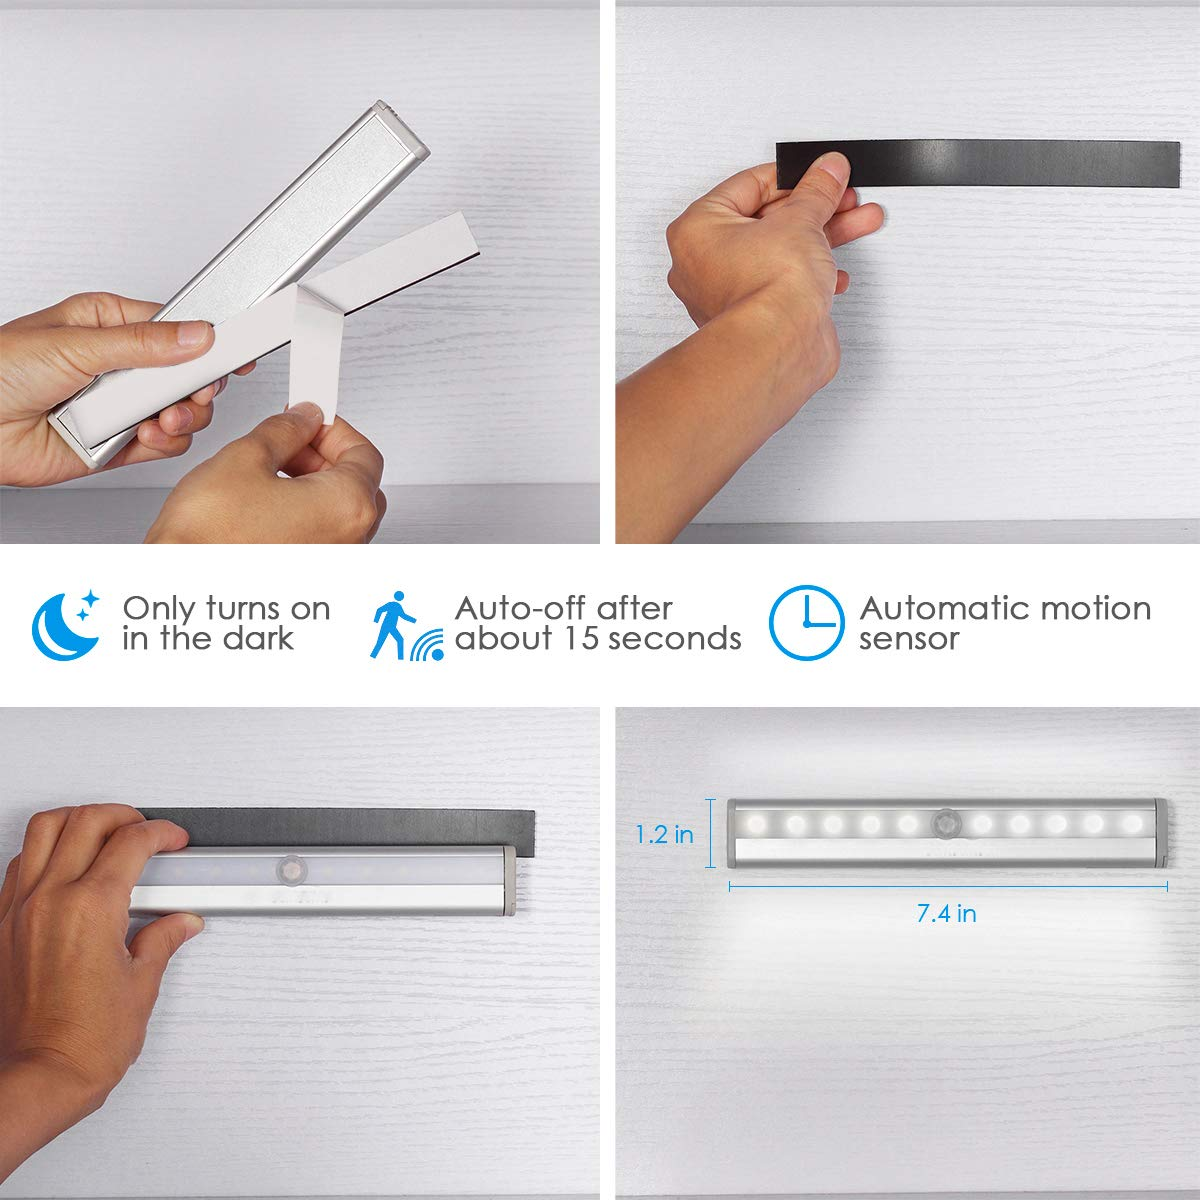 NEW VERSION AMIR Motion Sensor Lights, 10-LED DIY Stick-on Anywhere Battery Operated Portable Wireless Cabinet Night/Stairs/ Step/Closet Light Bar with Magnetic Strip (White, 3 Pack) by AMIR (Image #6)